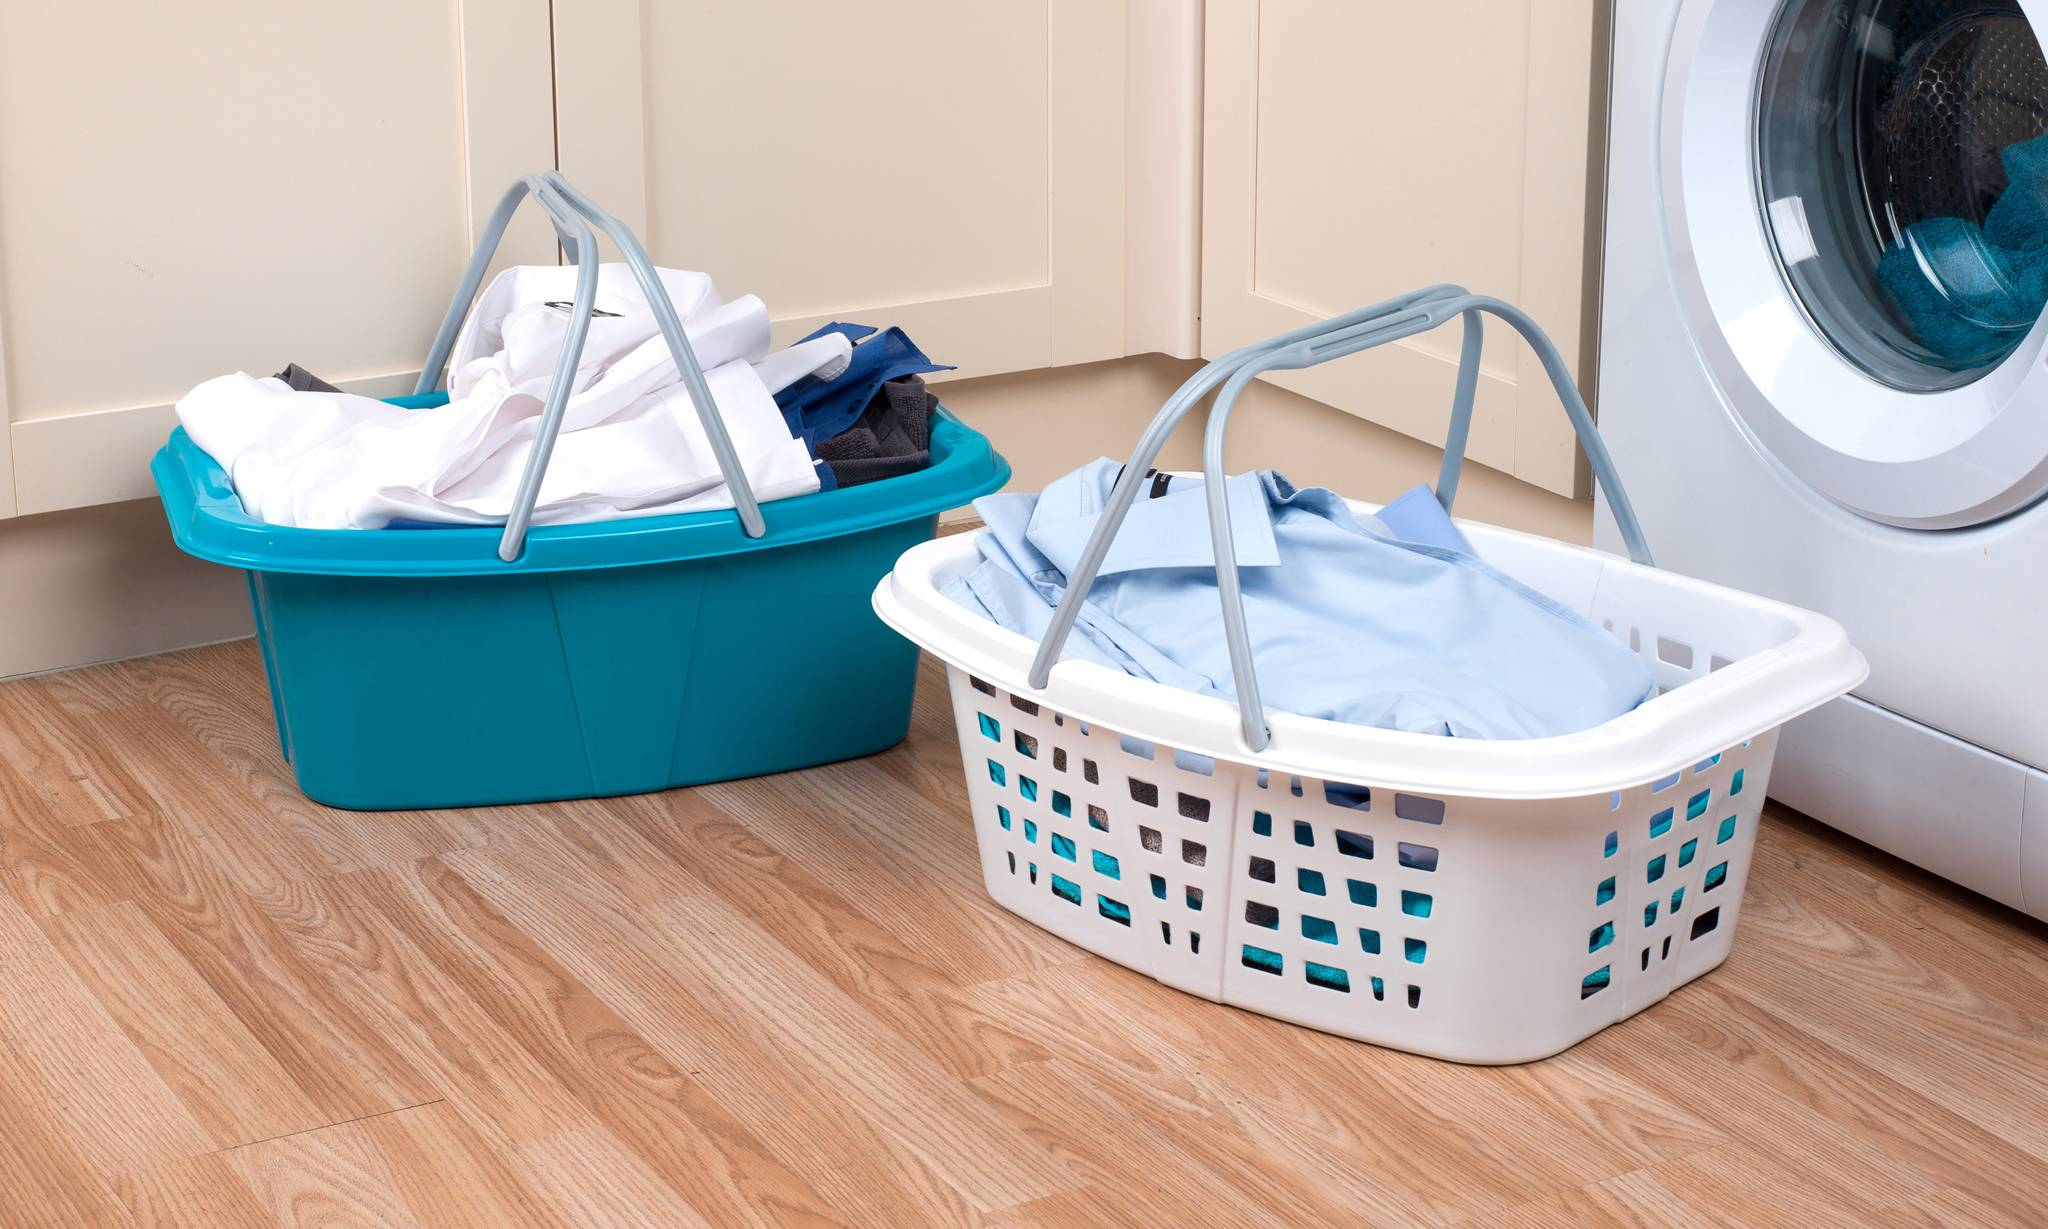 Beldray Set of Four Laundry Baskets with Handles